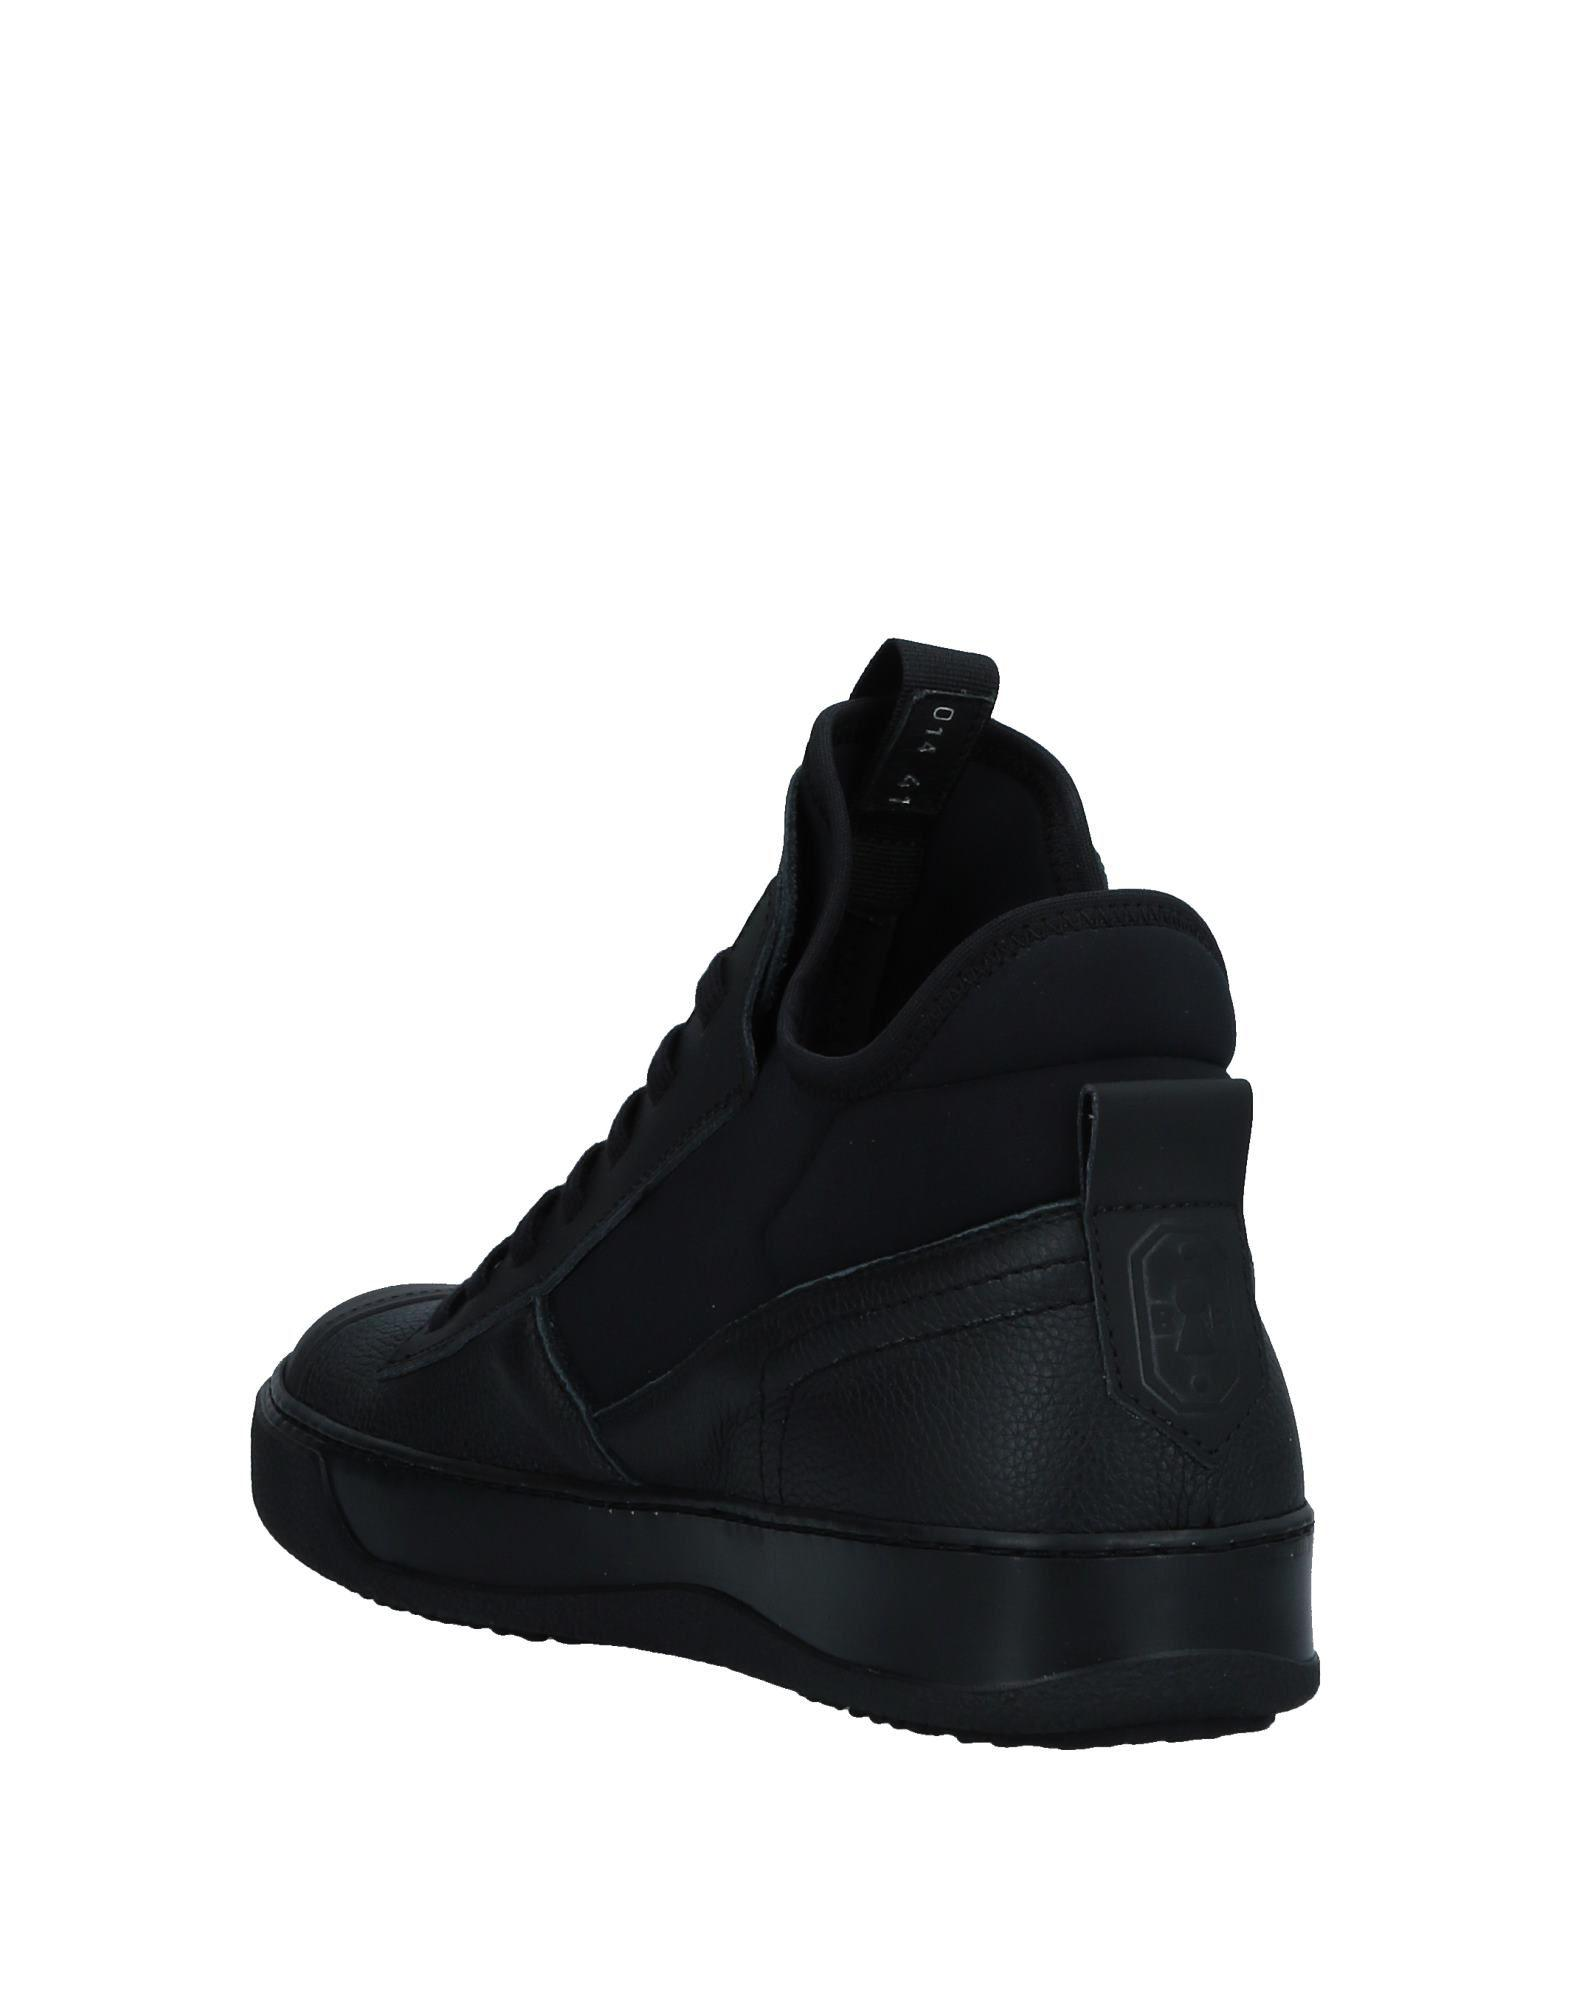 best website a4087 326dd bruno-bordese-Black-High-tops-Sneakers.jpeg